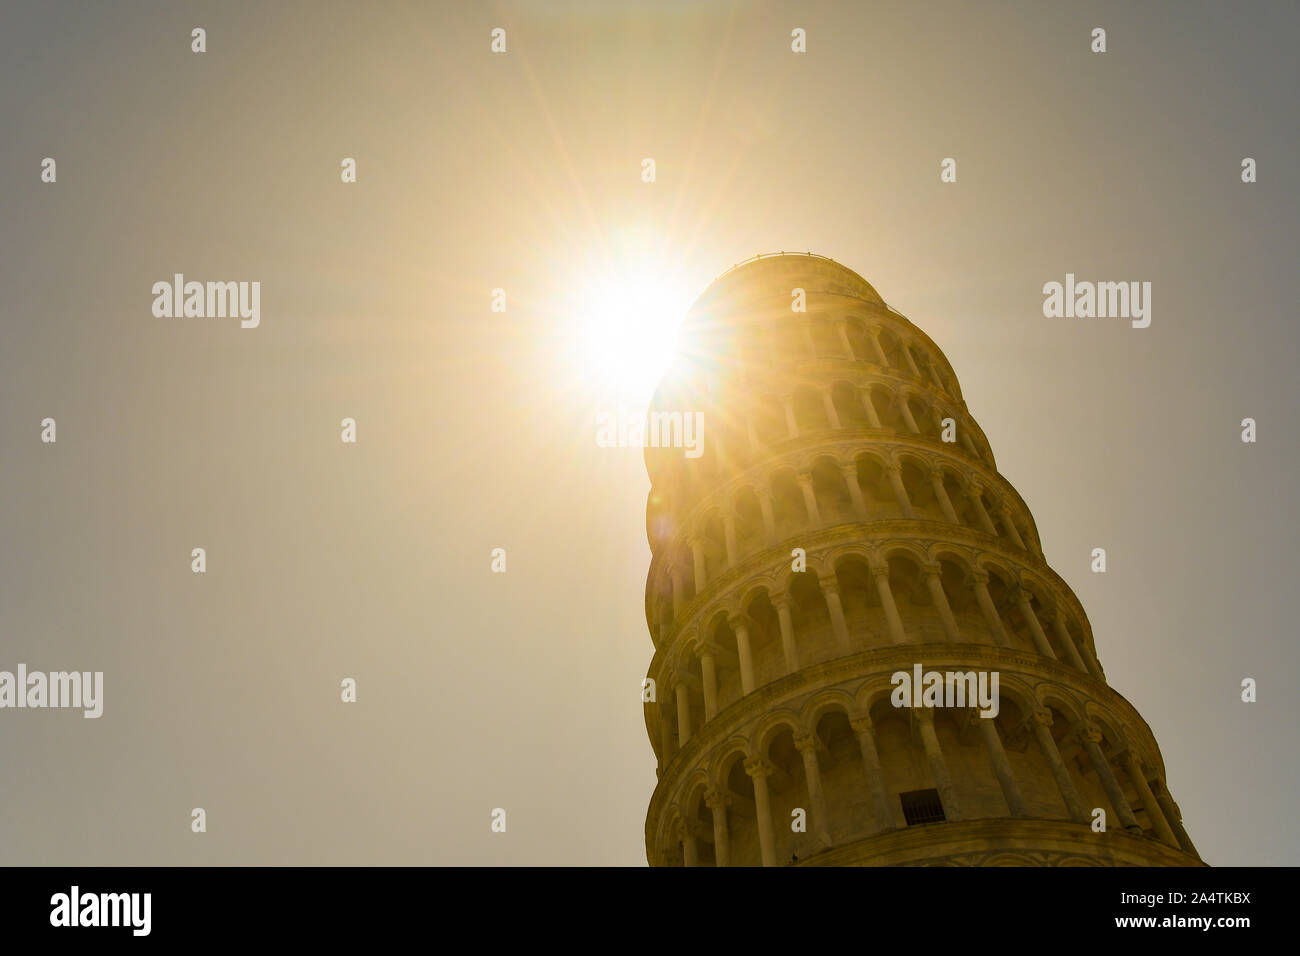 Backlit view of the Leaning Tower of Pisa, the freestanding bell tower of the Cathedral of Santa Maria Assunta in Piazza dei Miracoli, Tuscany, Italy Stock Photo